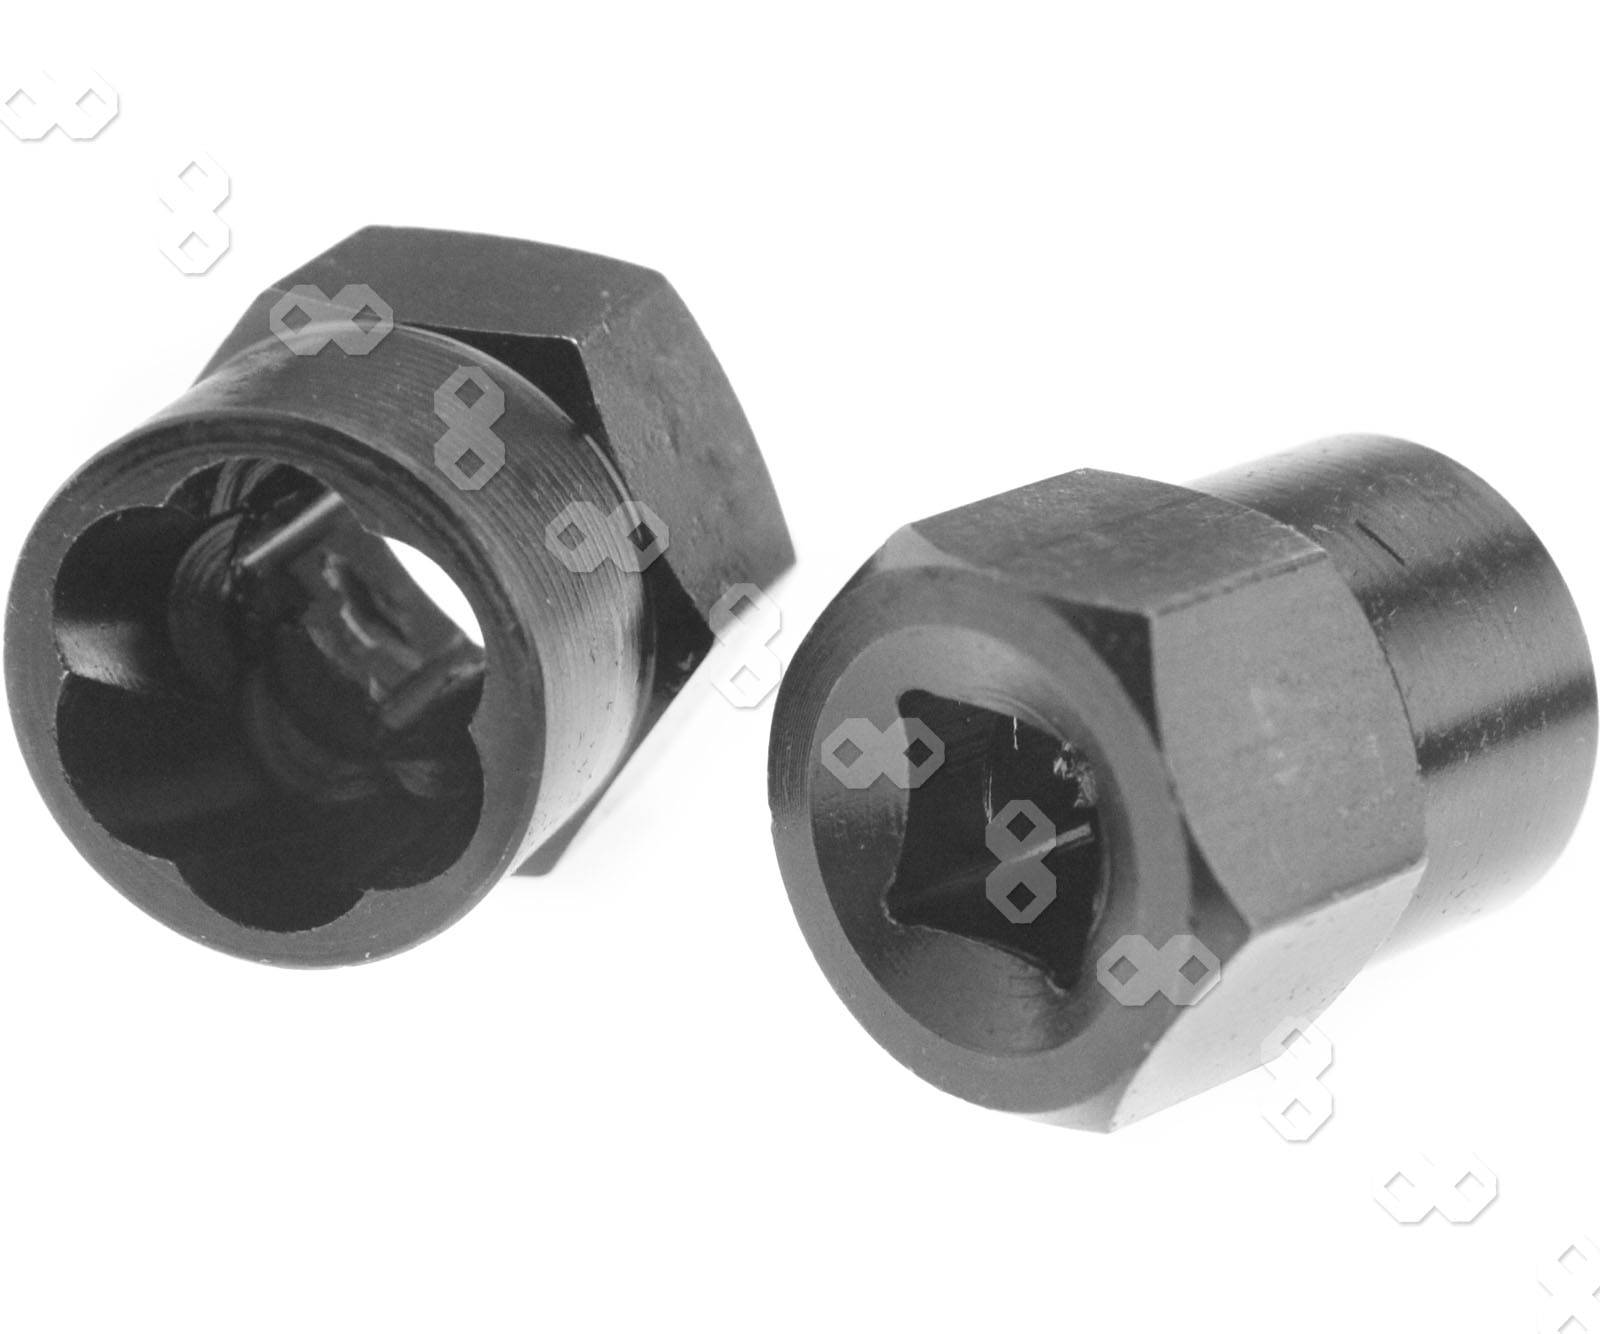 1 Sockets Hex X 2 2 1 1 Drive Head 2 Socket